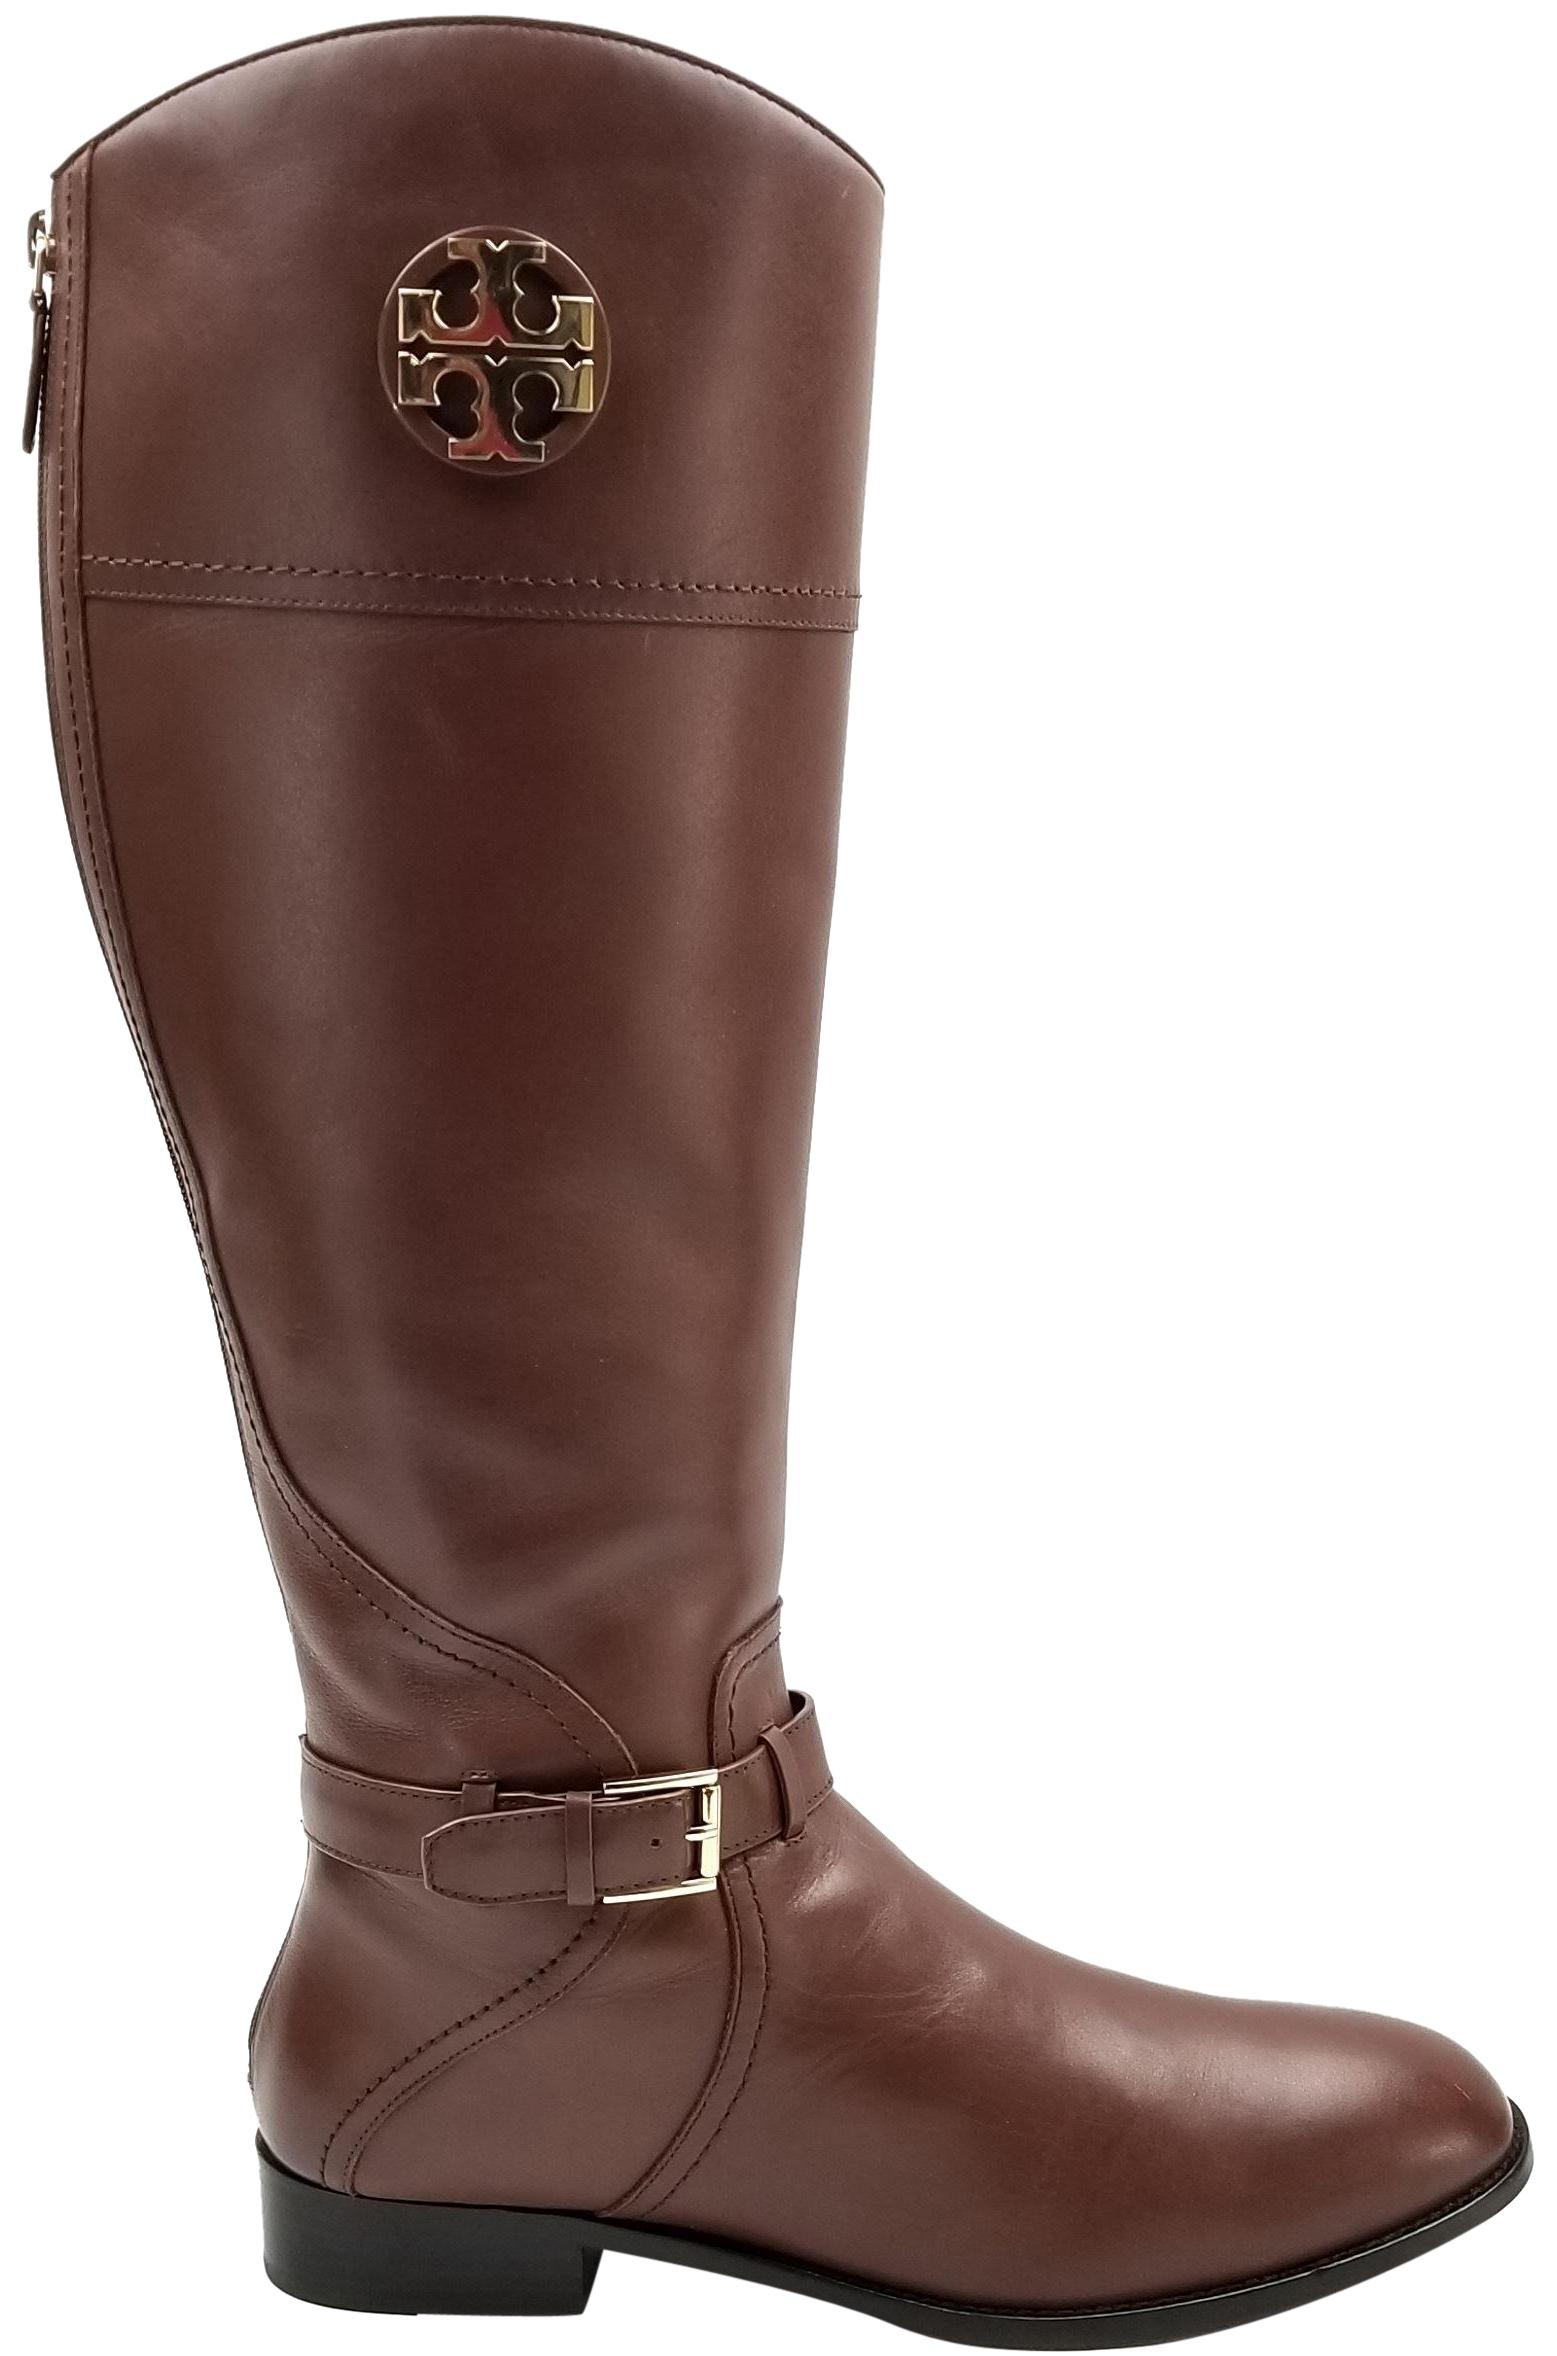 Tory Burch Almond 'adeline' Tall Boots/Booties Size US 7.5 Regular (M, B)